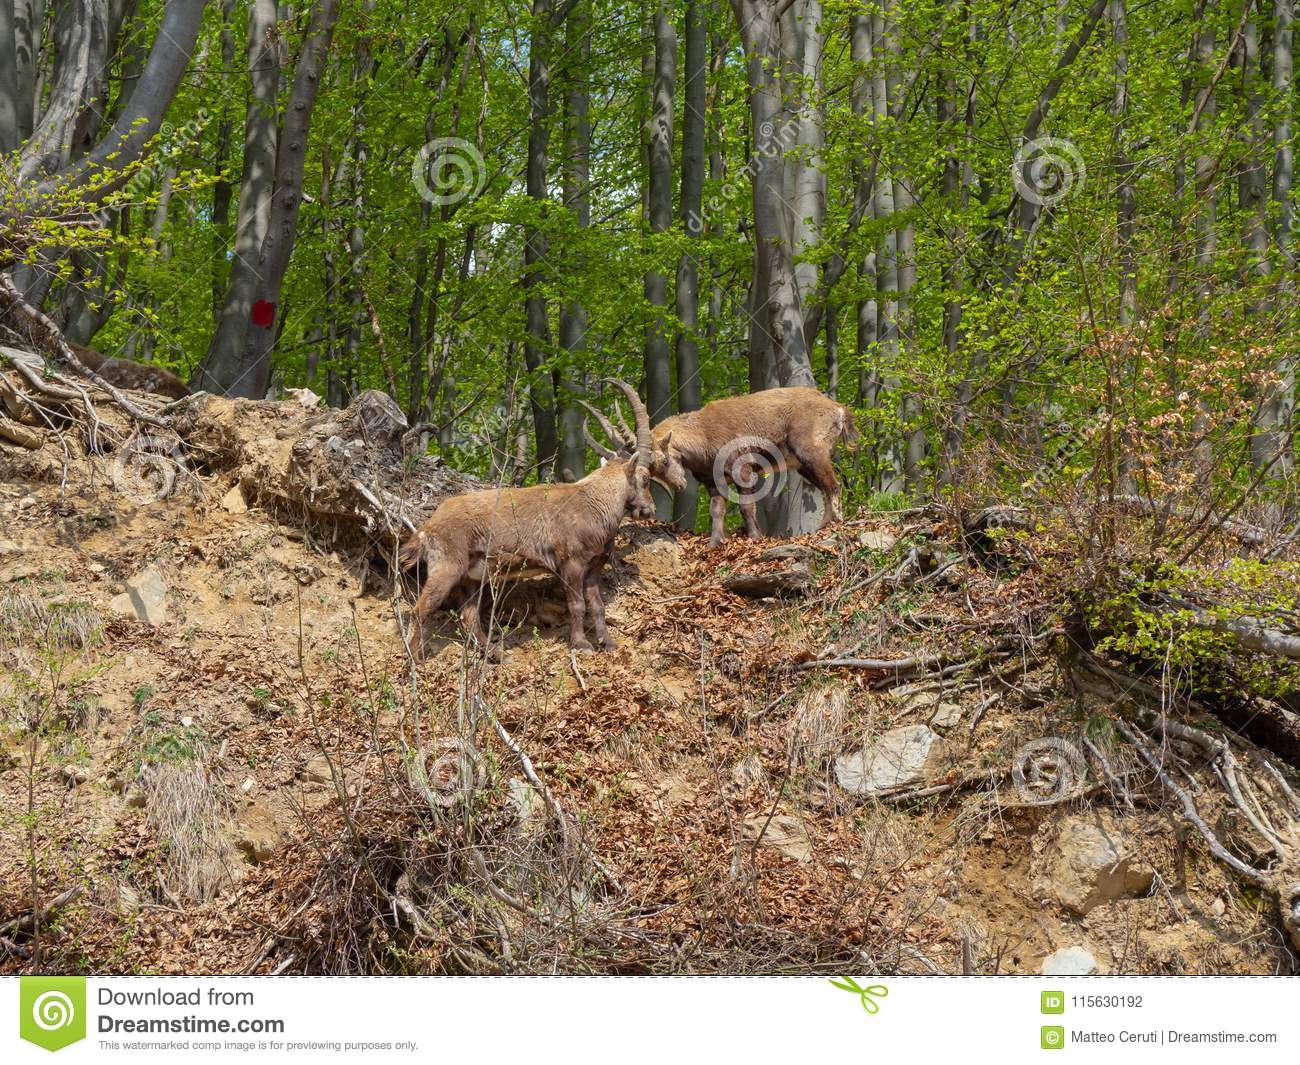 Alpine ibex or steinbock in spring season fight with horns. Italy, Orobie Alps